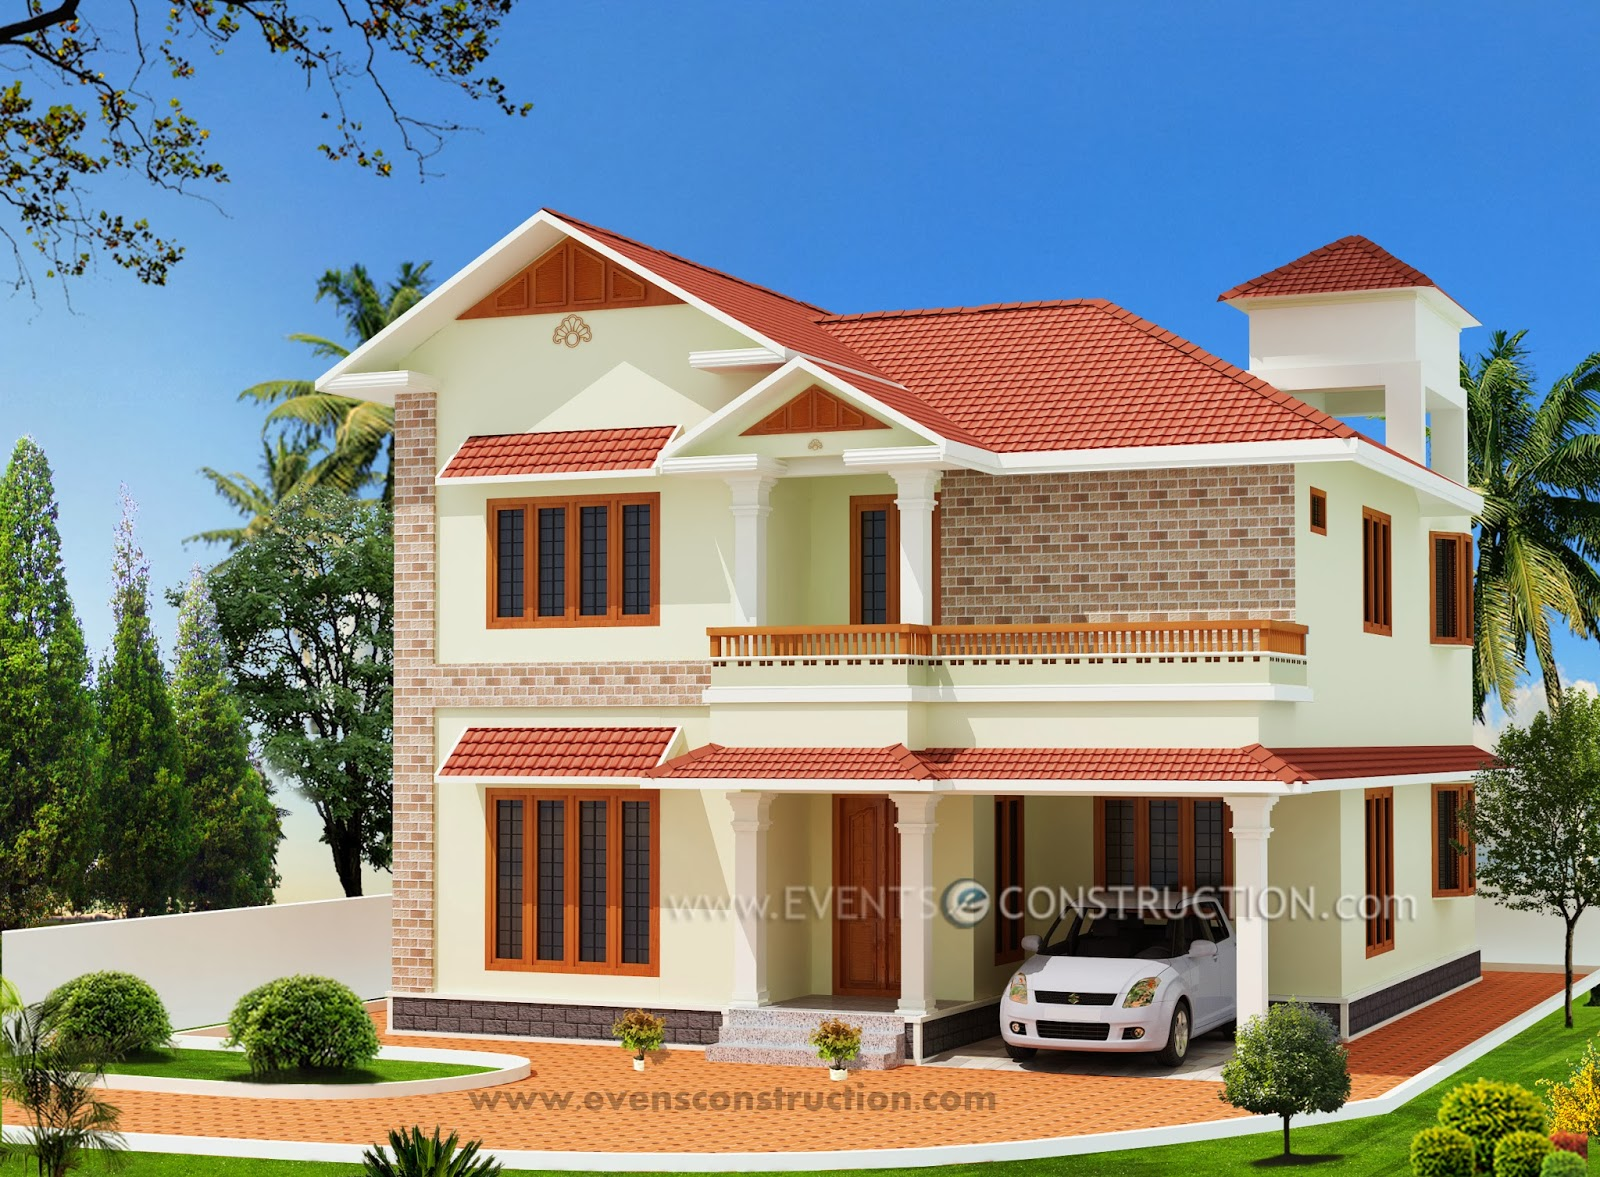 Evens construction pvt ltd new 3d kerala house designs for Home plans hd images